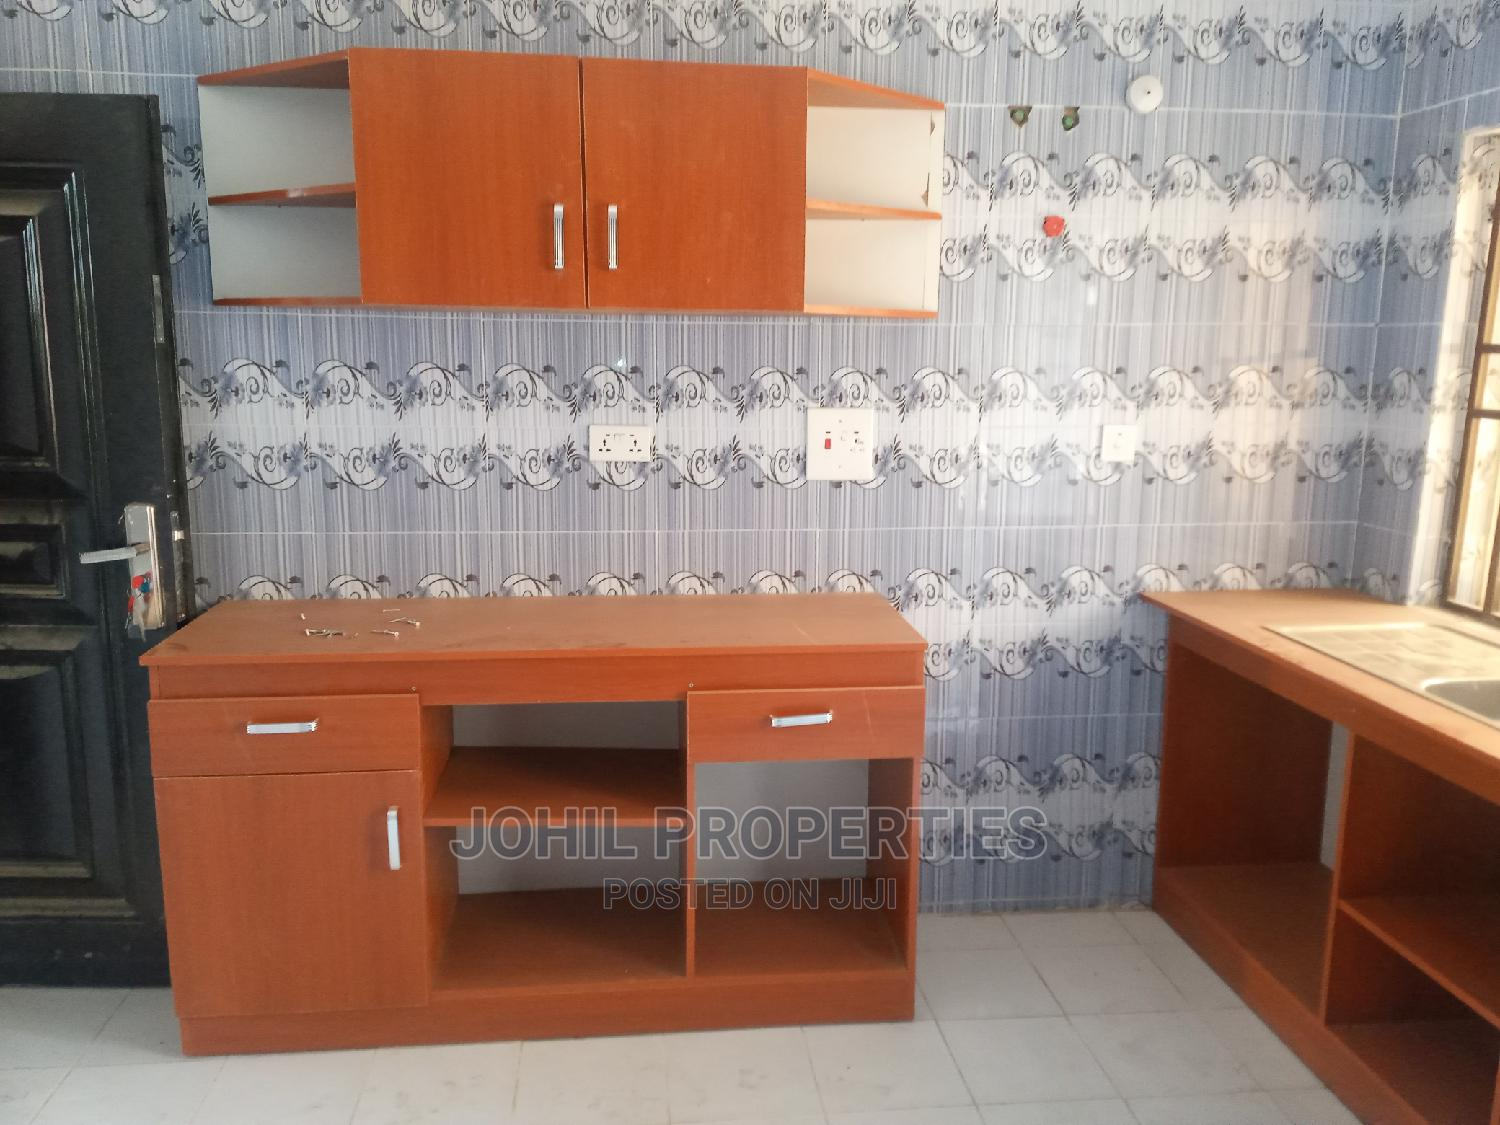 3 Bedroom Terrace Duplex For Sale At Asokoro 2   Houses & Apartments For Sale for sale in Asokoro, Abuja (FCT) State, Nigeria